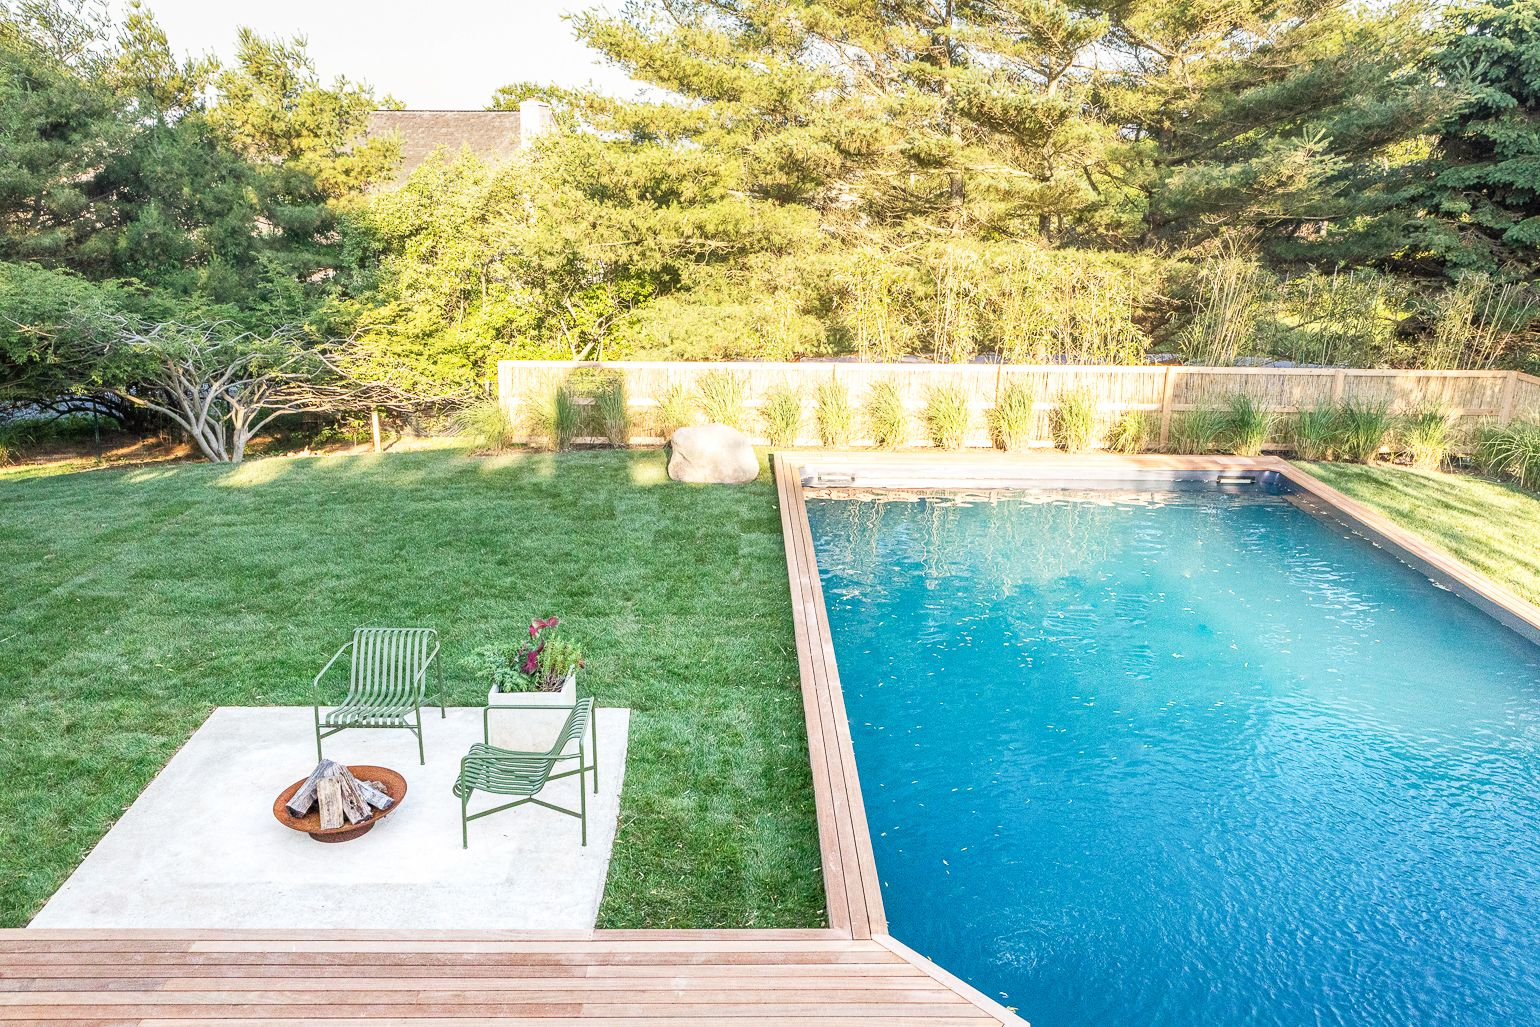 16 Best Pool Designs - Beautiful Swimming Pool Ideas